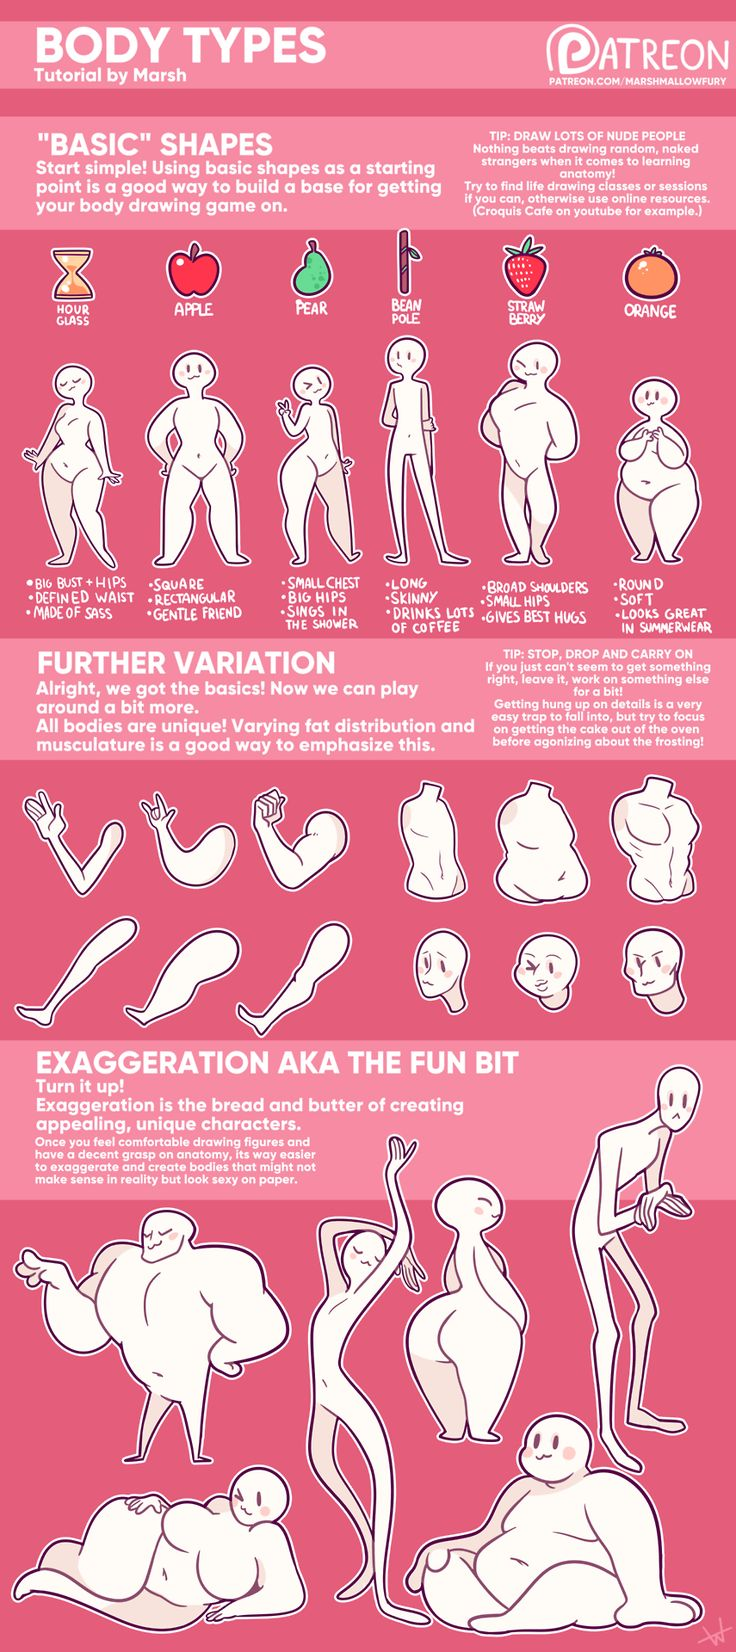 marshmallowfury: ★ Body Type Tutorial ★ ... | Creeping into your heart.